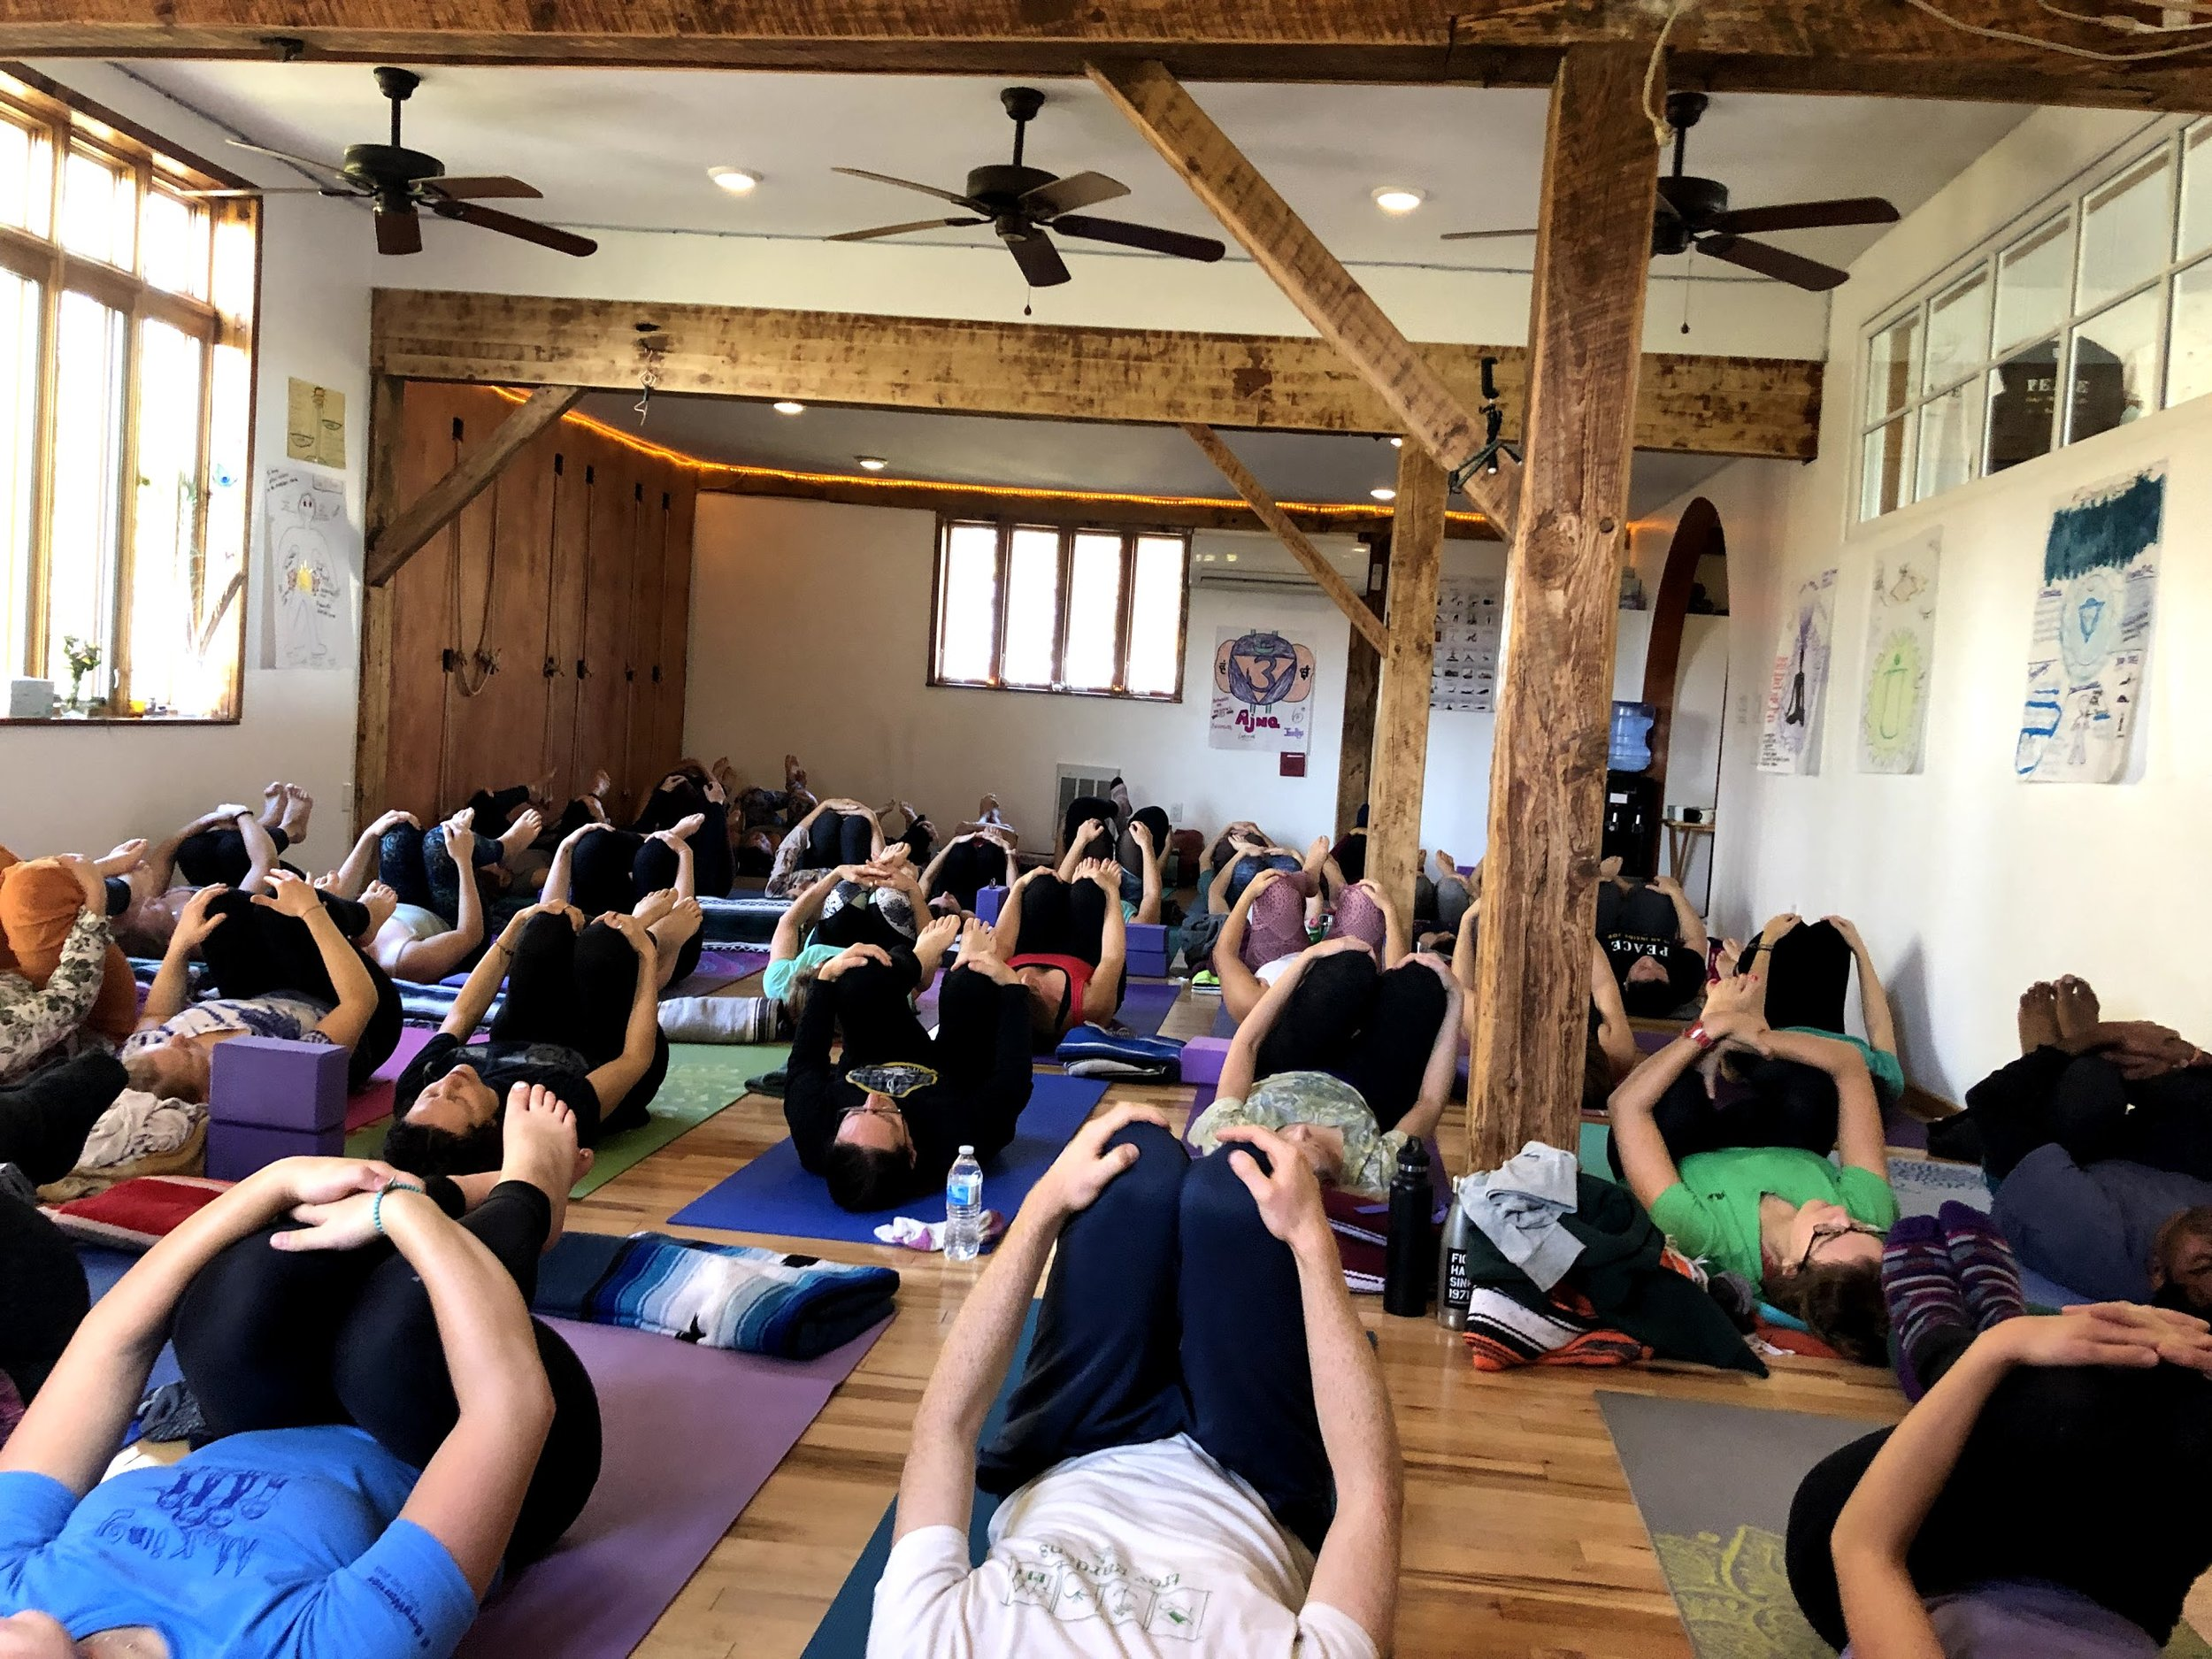 Recent community yoga class - we are at capacity and need to expand